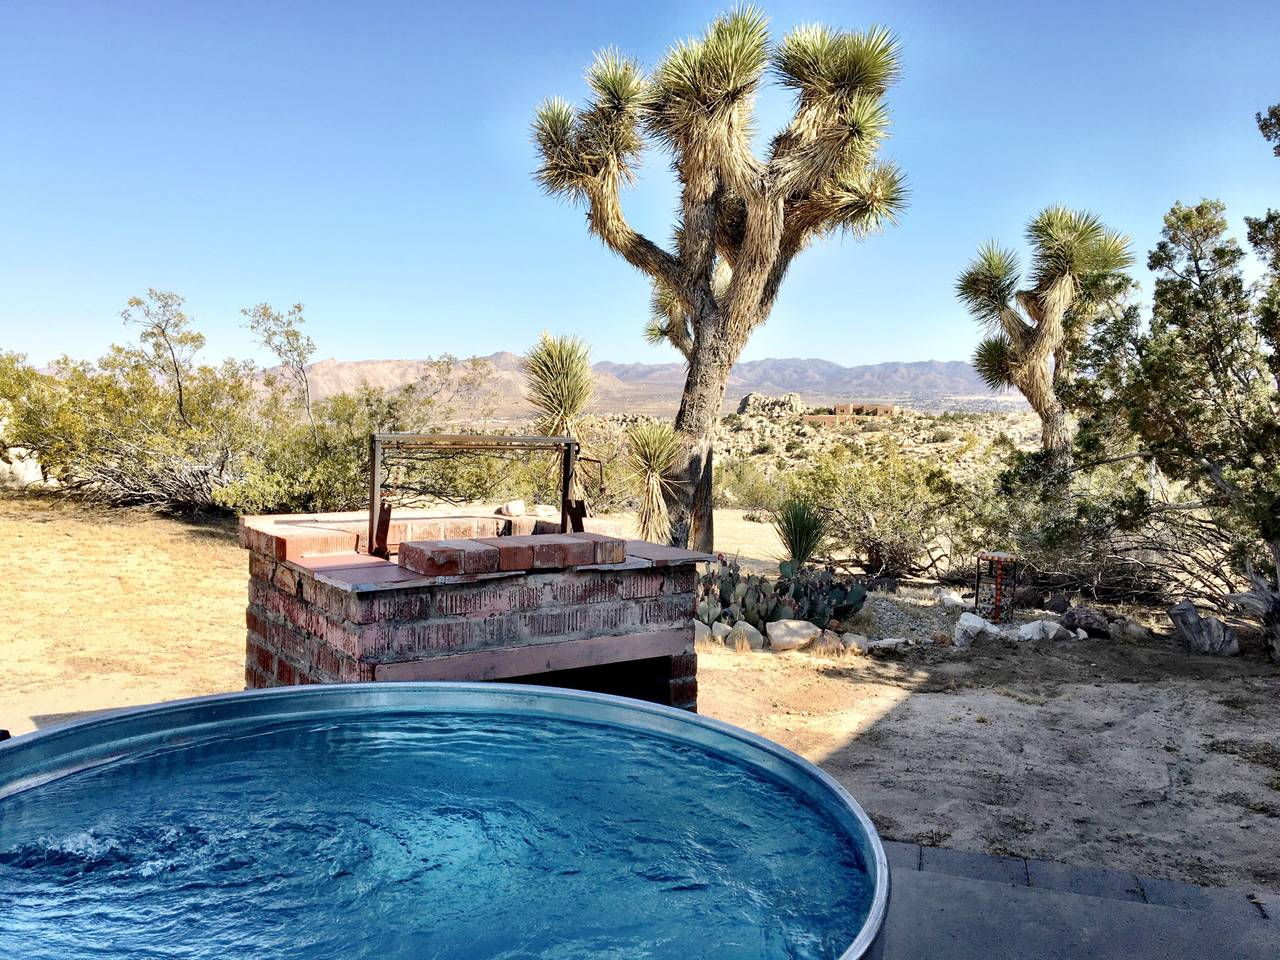 desert bungalow in yucca valley airbnb